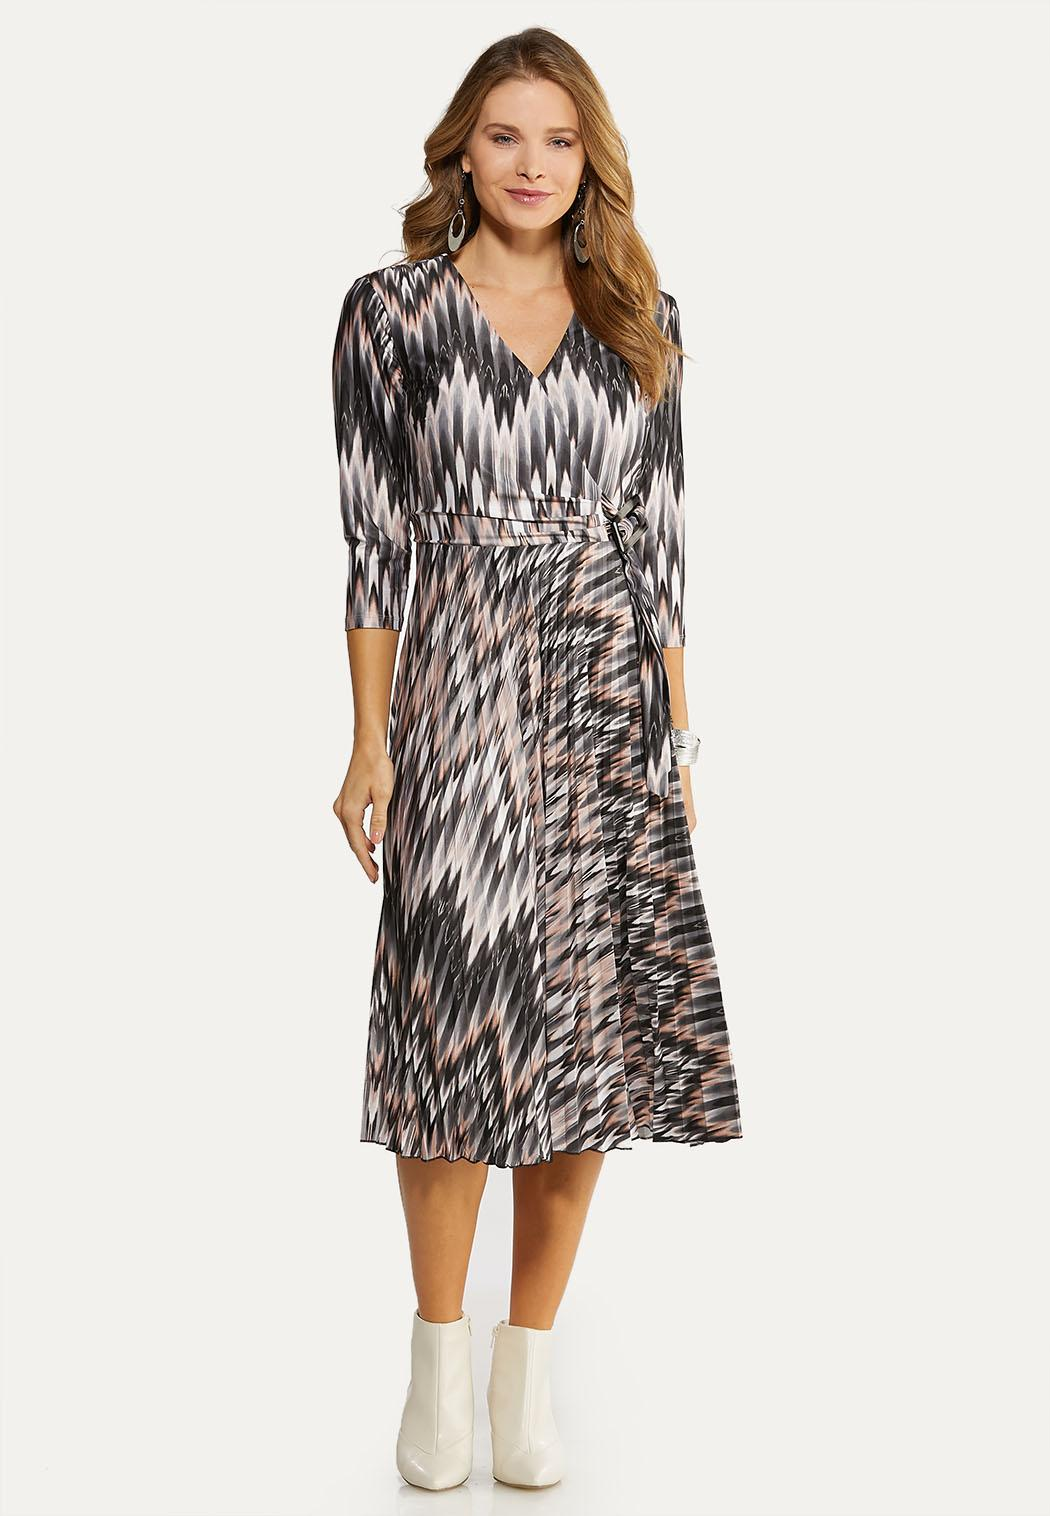 Plus Size Silky Chevron Dress Dresses Cato Fashions